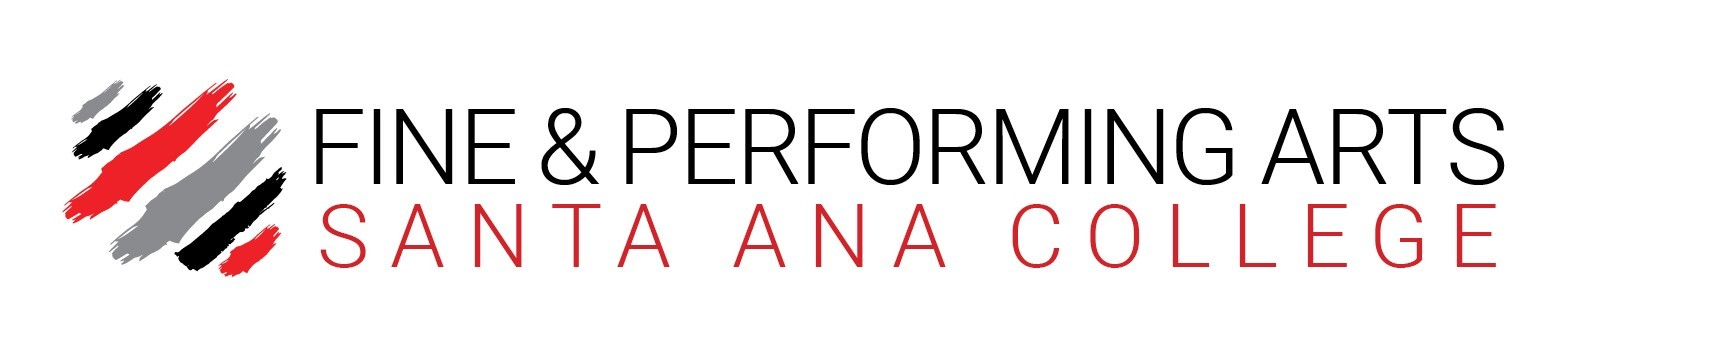 Fine and Performing Arts Banner